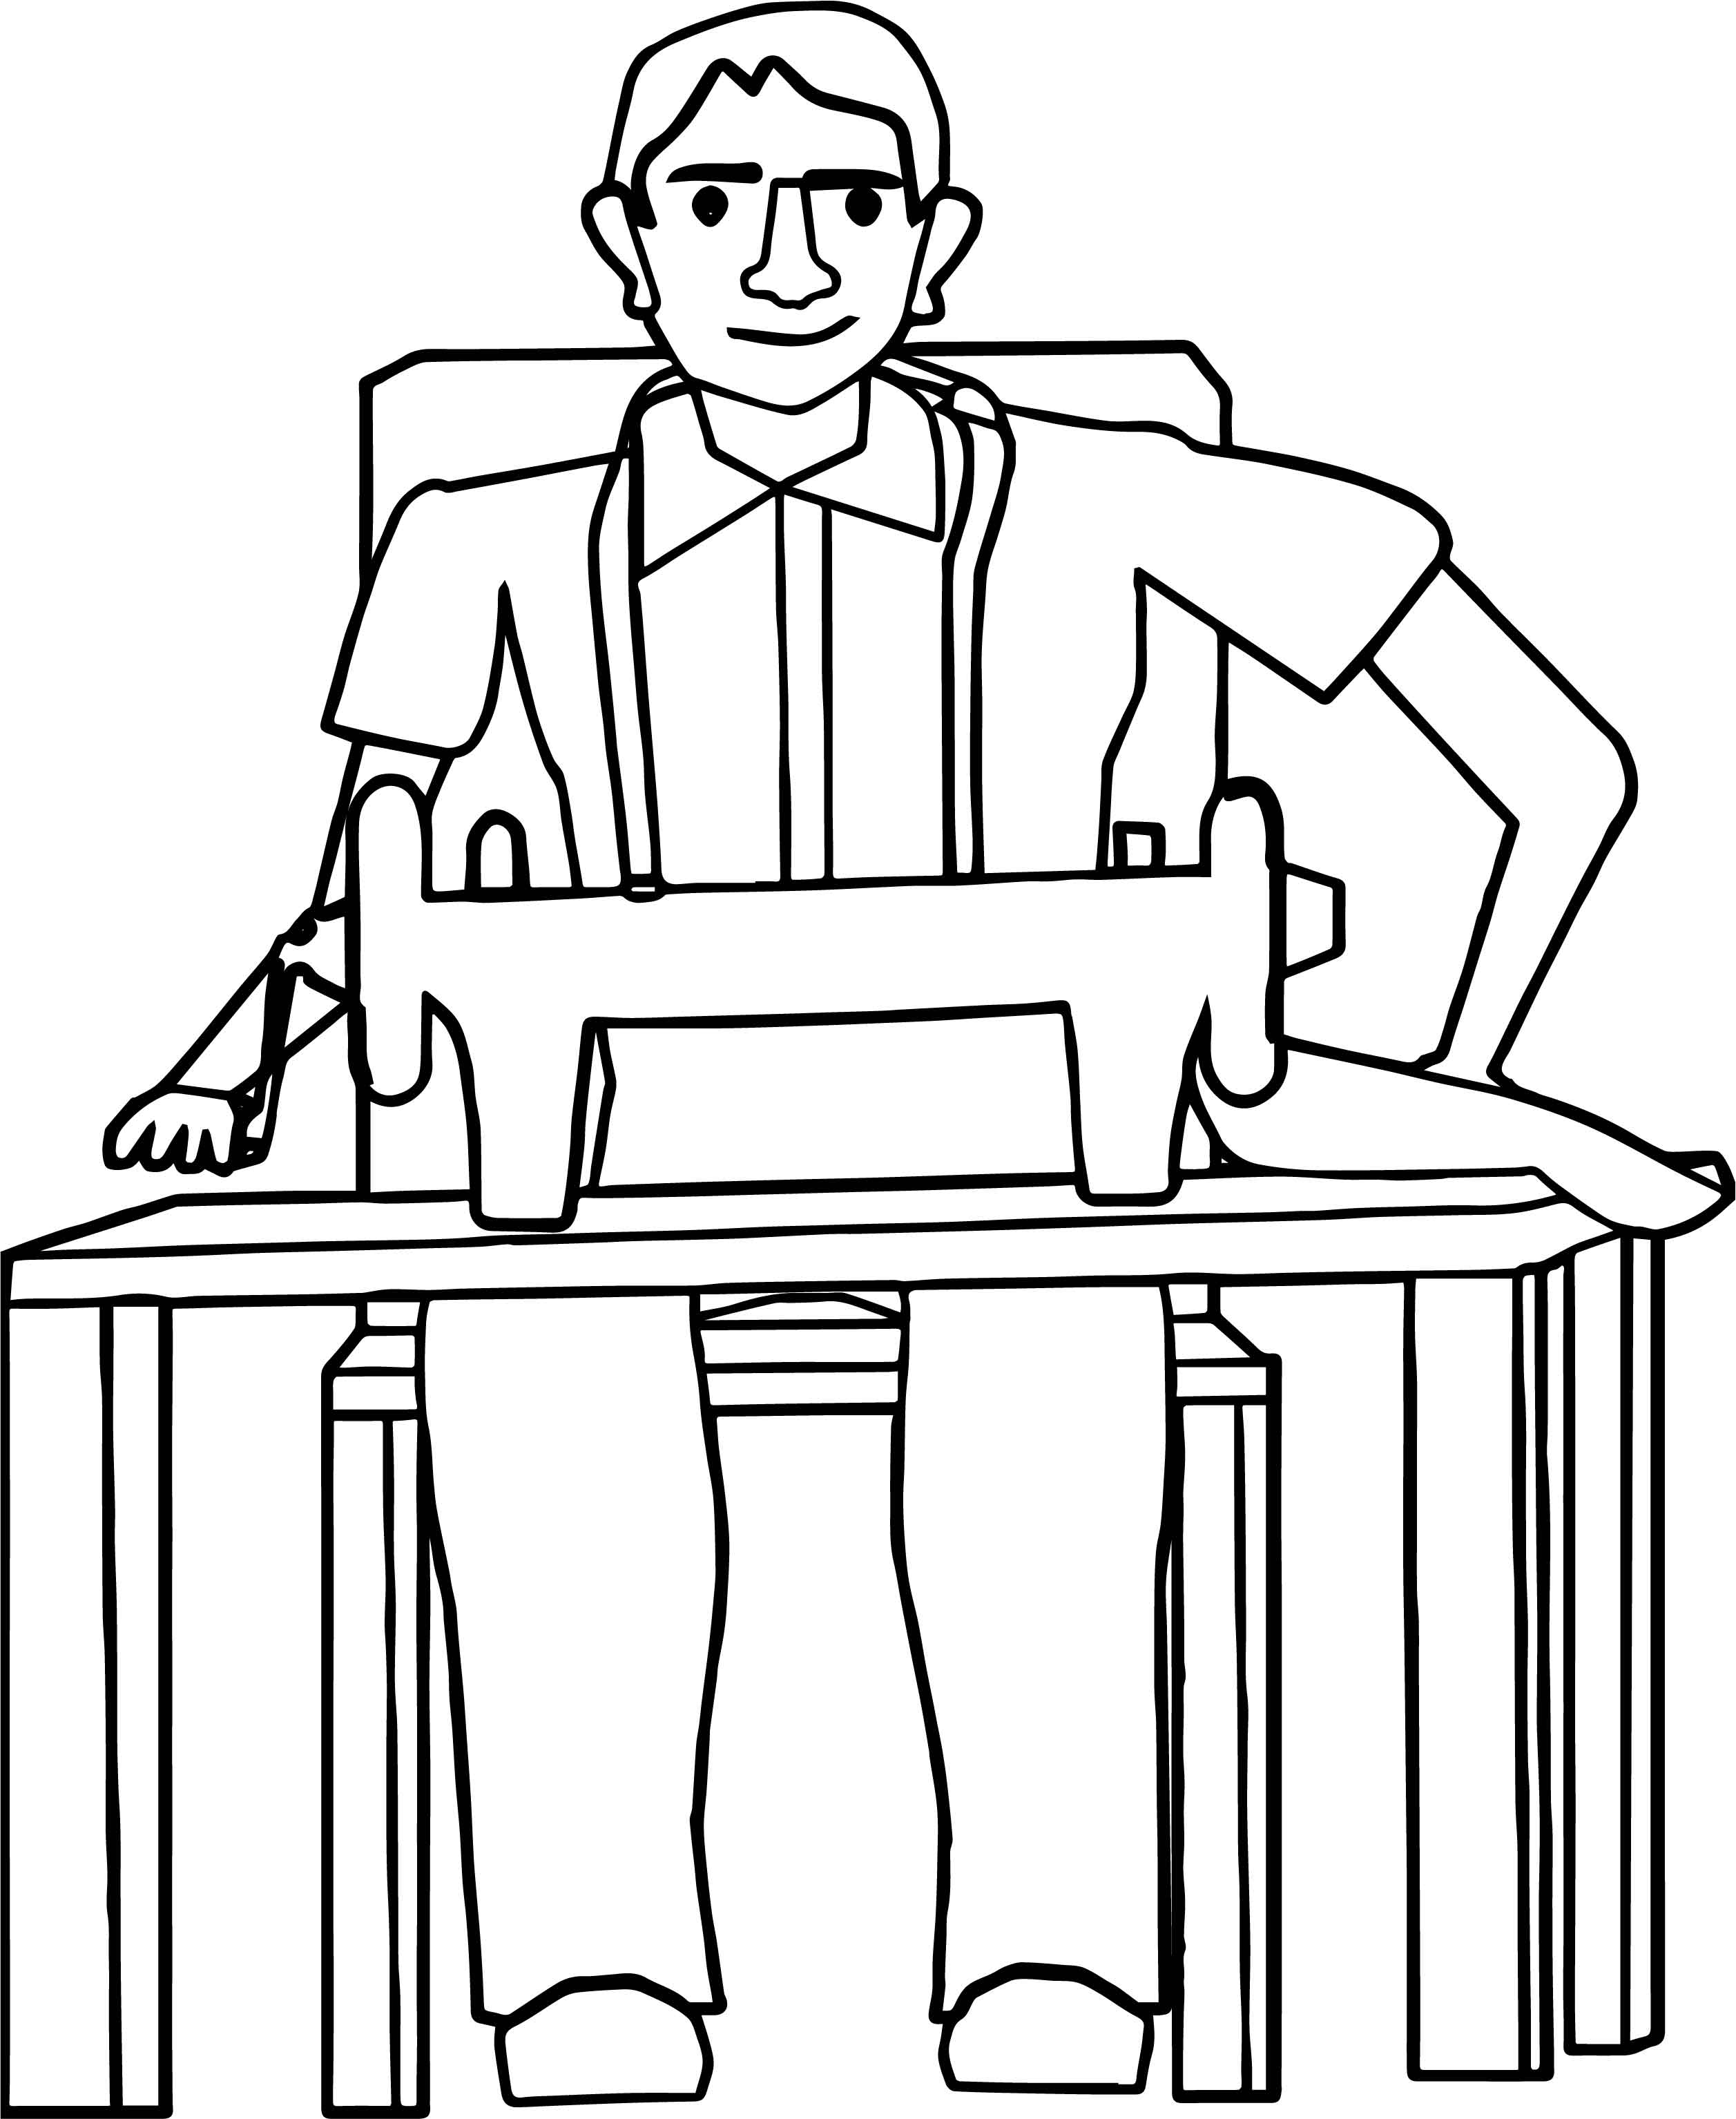 exclusive funny fax machine clip art design free a fax machine